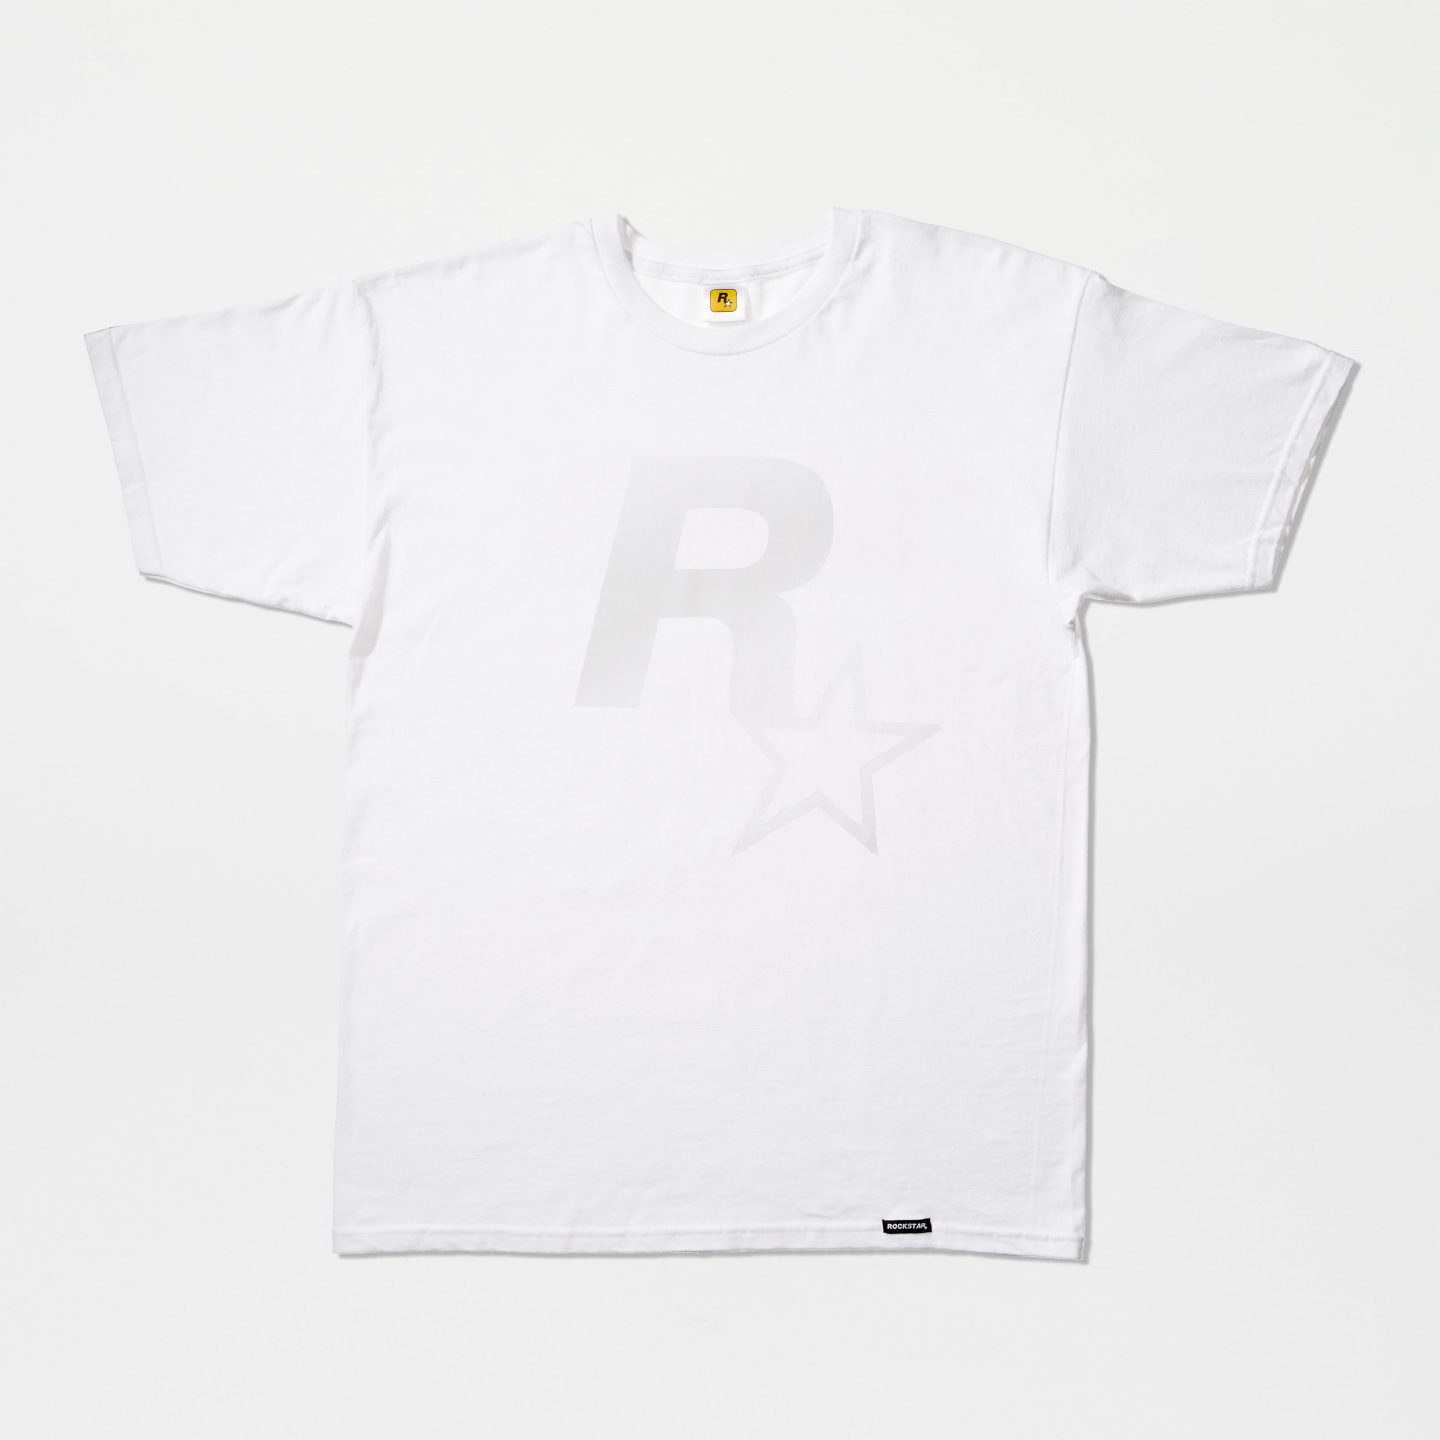 Rockstar Logo White Out Tee